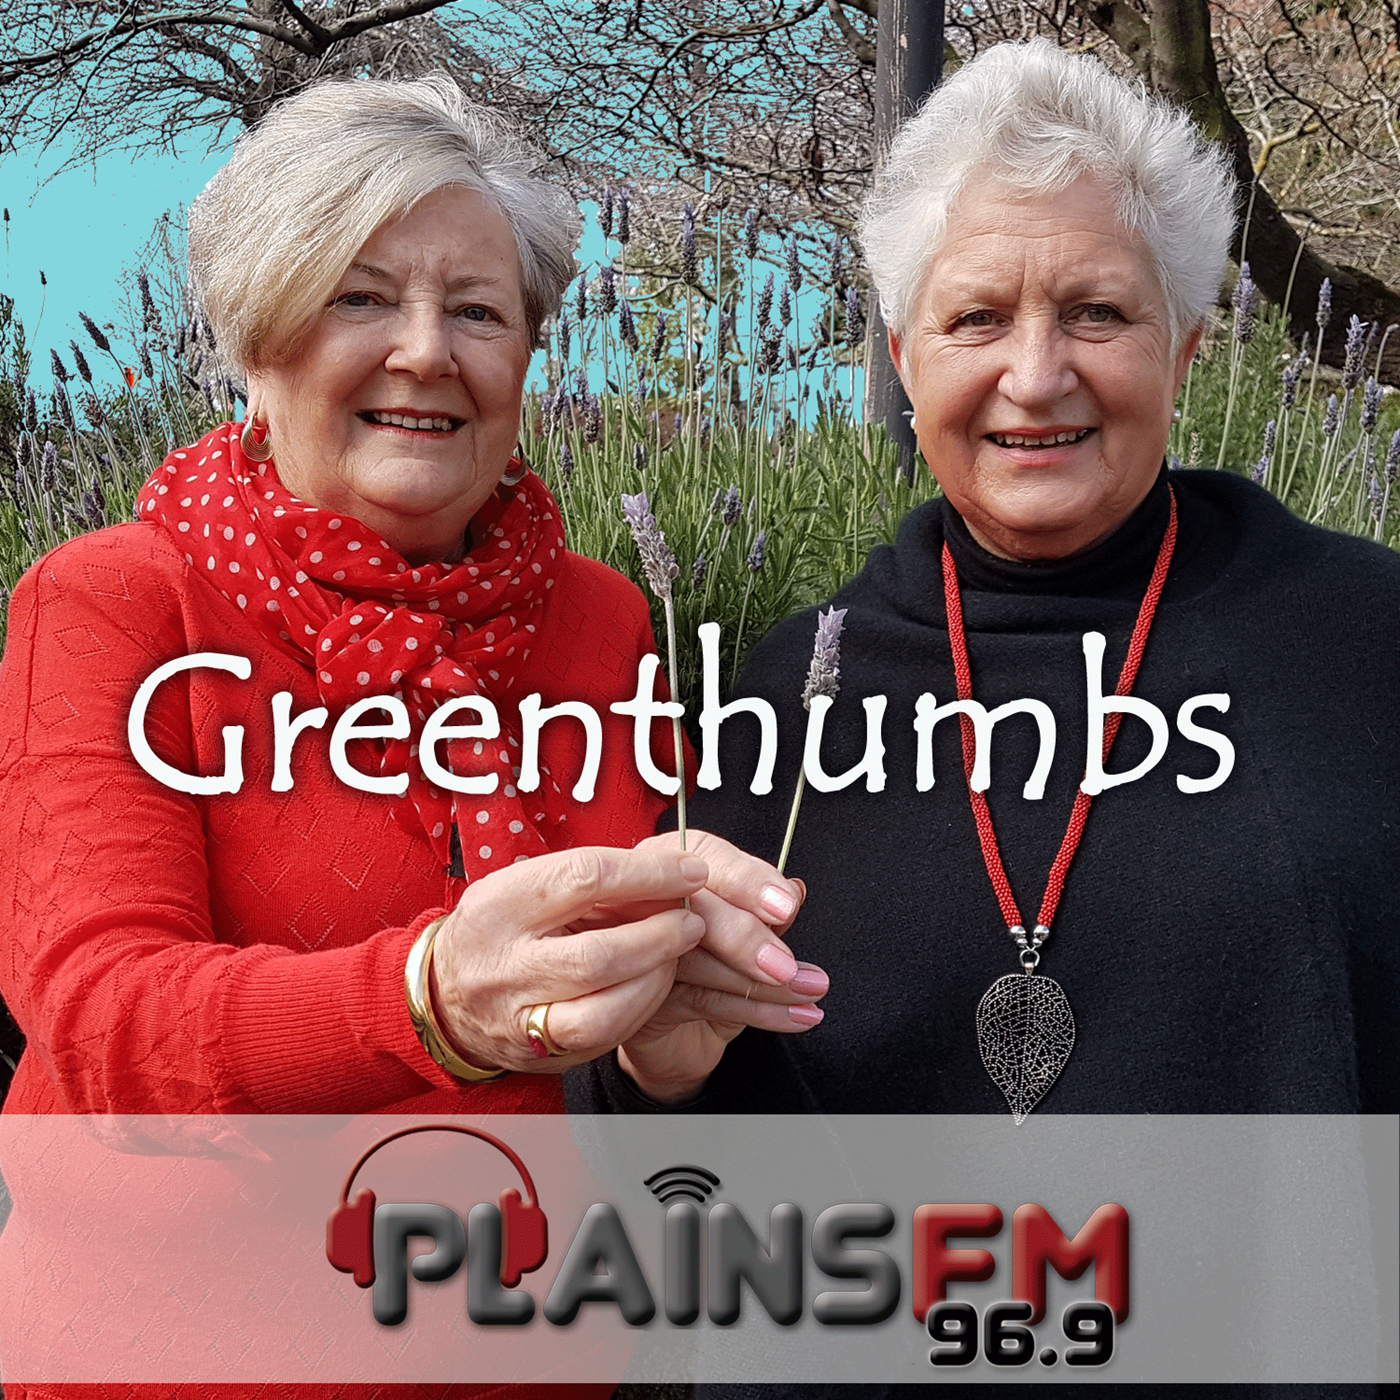 https://cdn.accessradio.org/StationFolder/plainsfm/Images/GreenthumbsinCanterbury.png